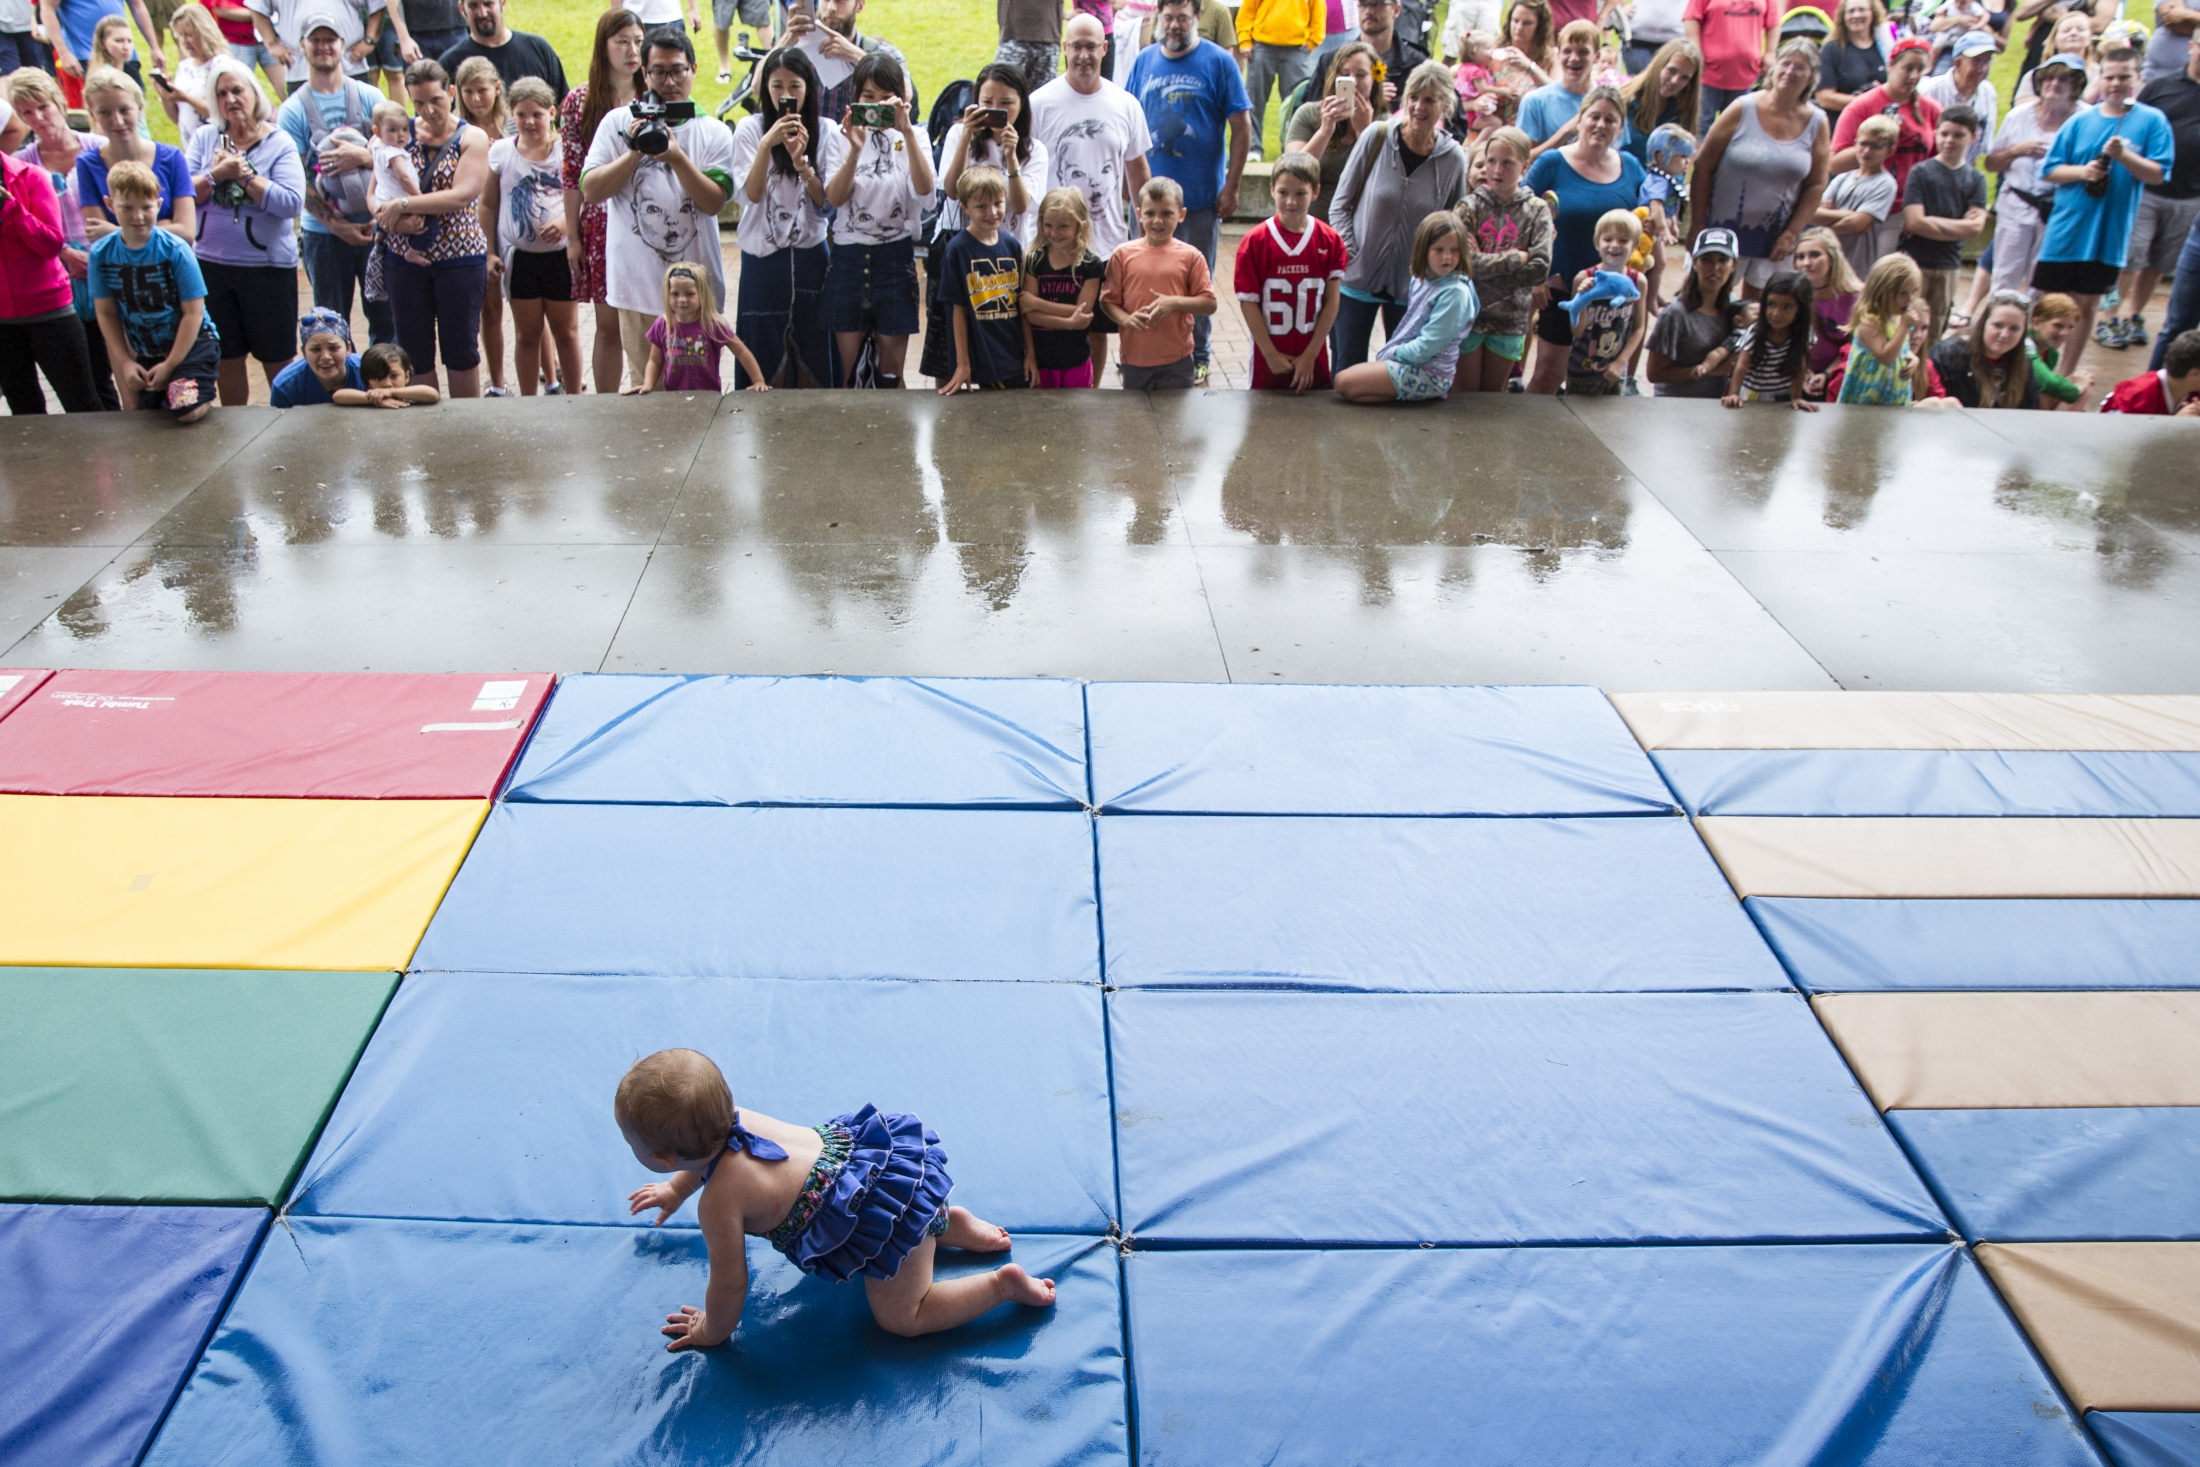 Ten-month-old Piper Nelson crawls across the mat during a baby crawl contest at Gerber National Baby Food Festival in downtown Fremont, Mich. on Saturday, July 22, 2017. Nelson finished her heat in first place.